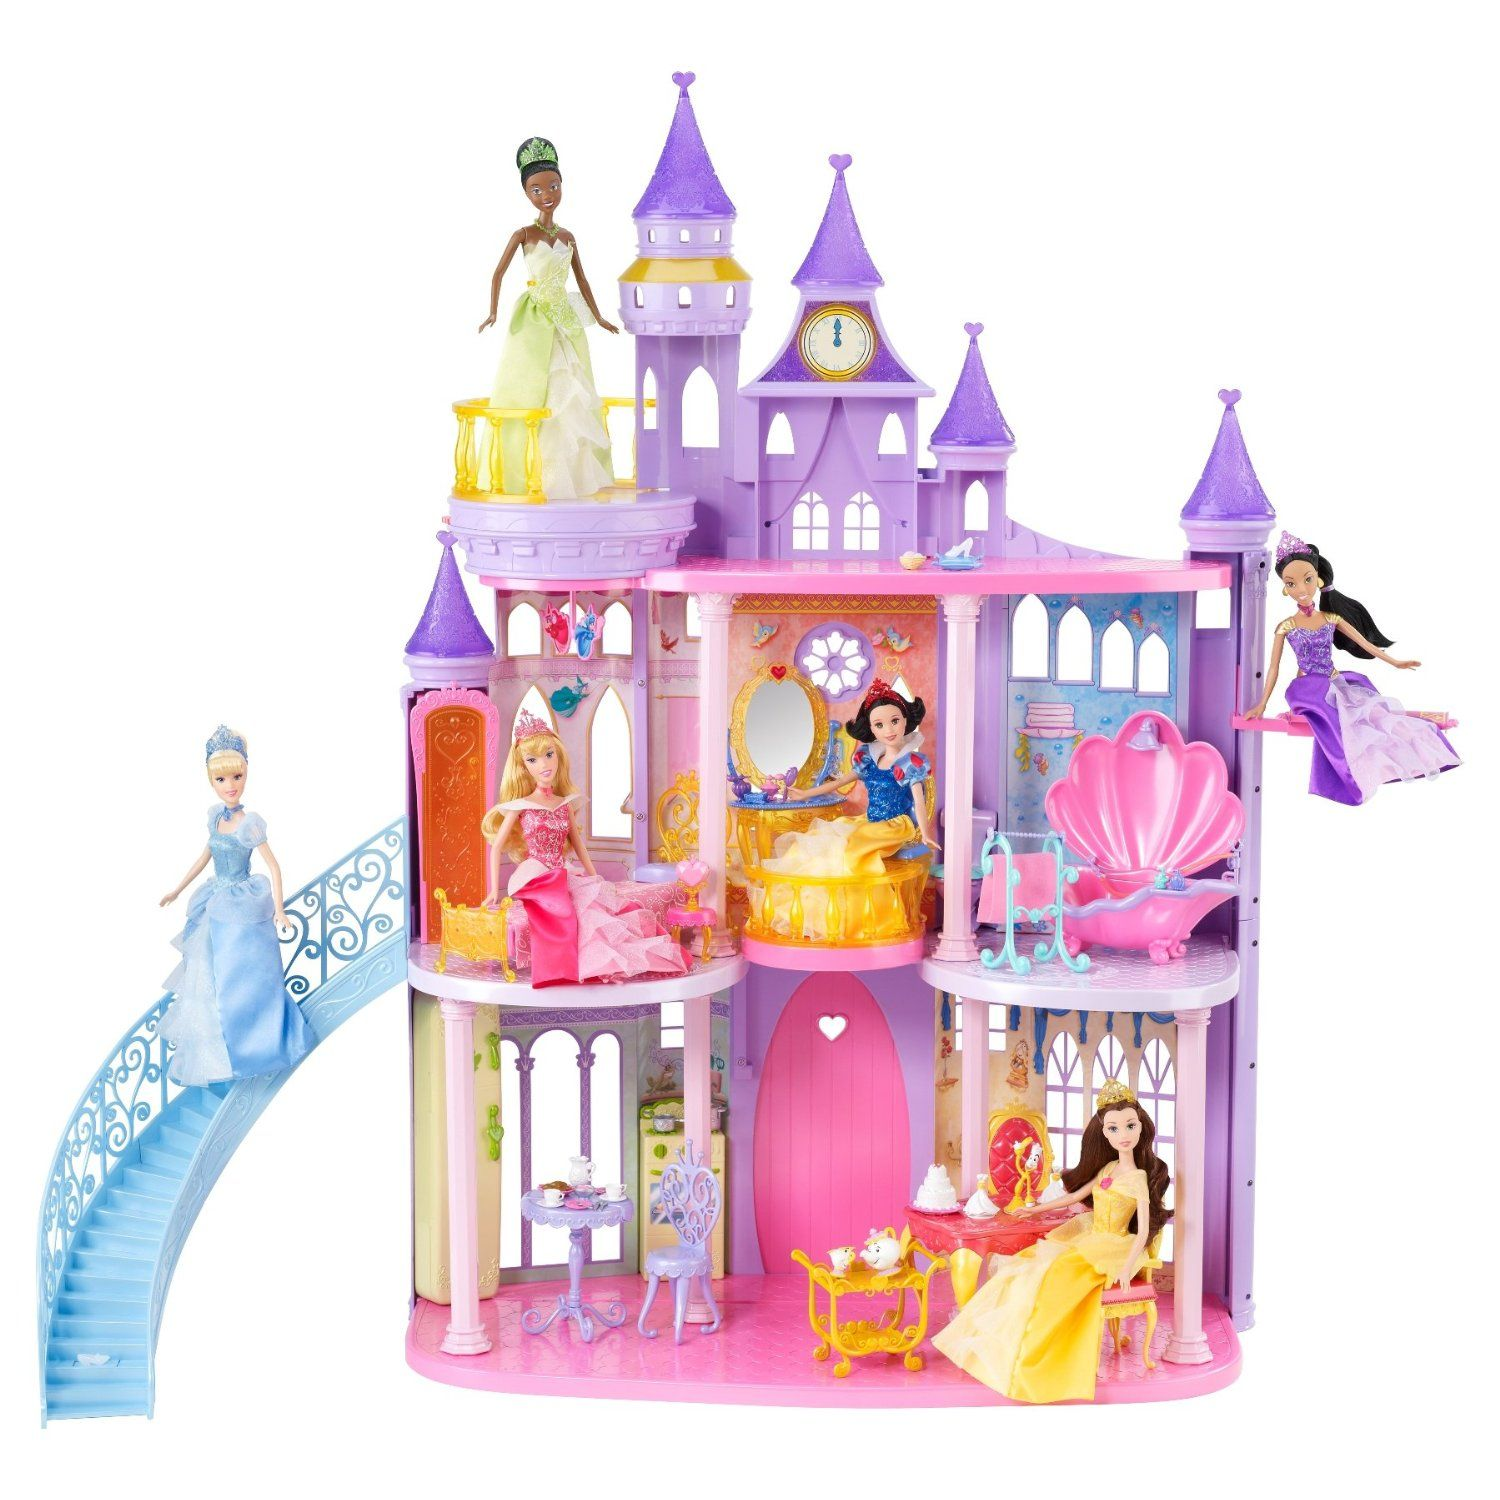 Disney Princess Ultimate Dream Castle Mattel Amazon Toys